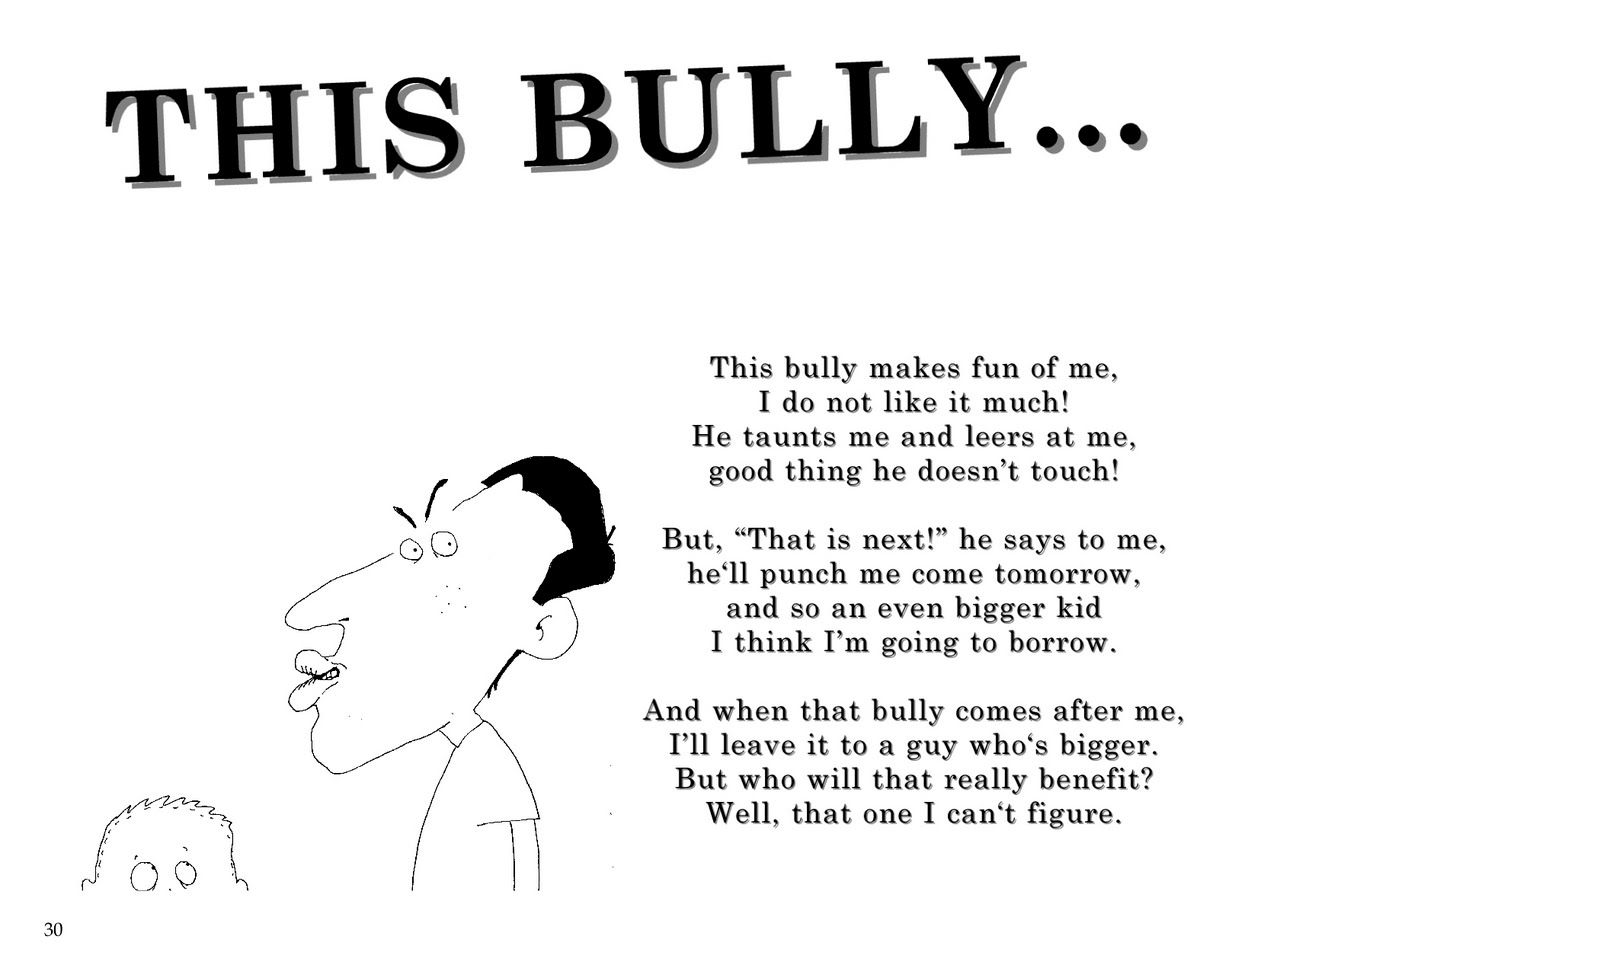 overcoming bullying quotes | JUSTIN MATOTT'S BLOGOSPHERE*: THIS ...